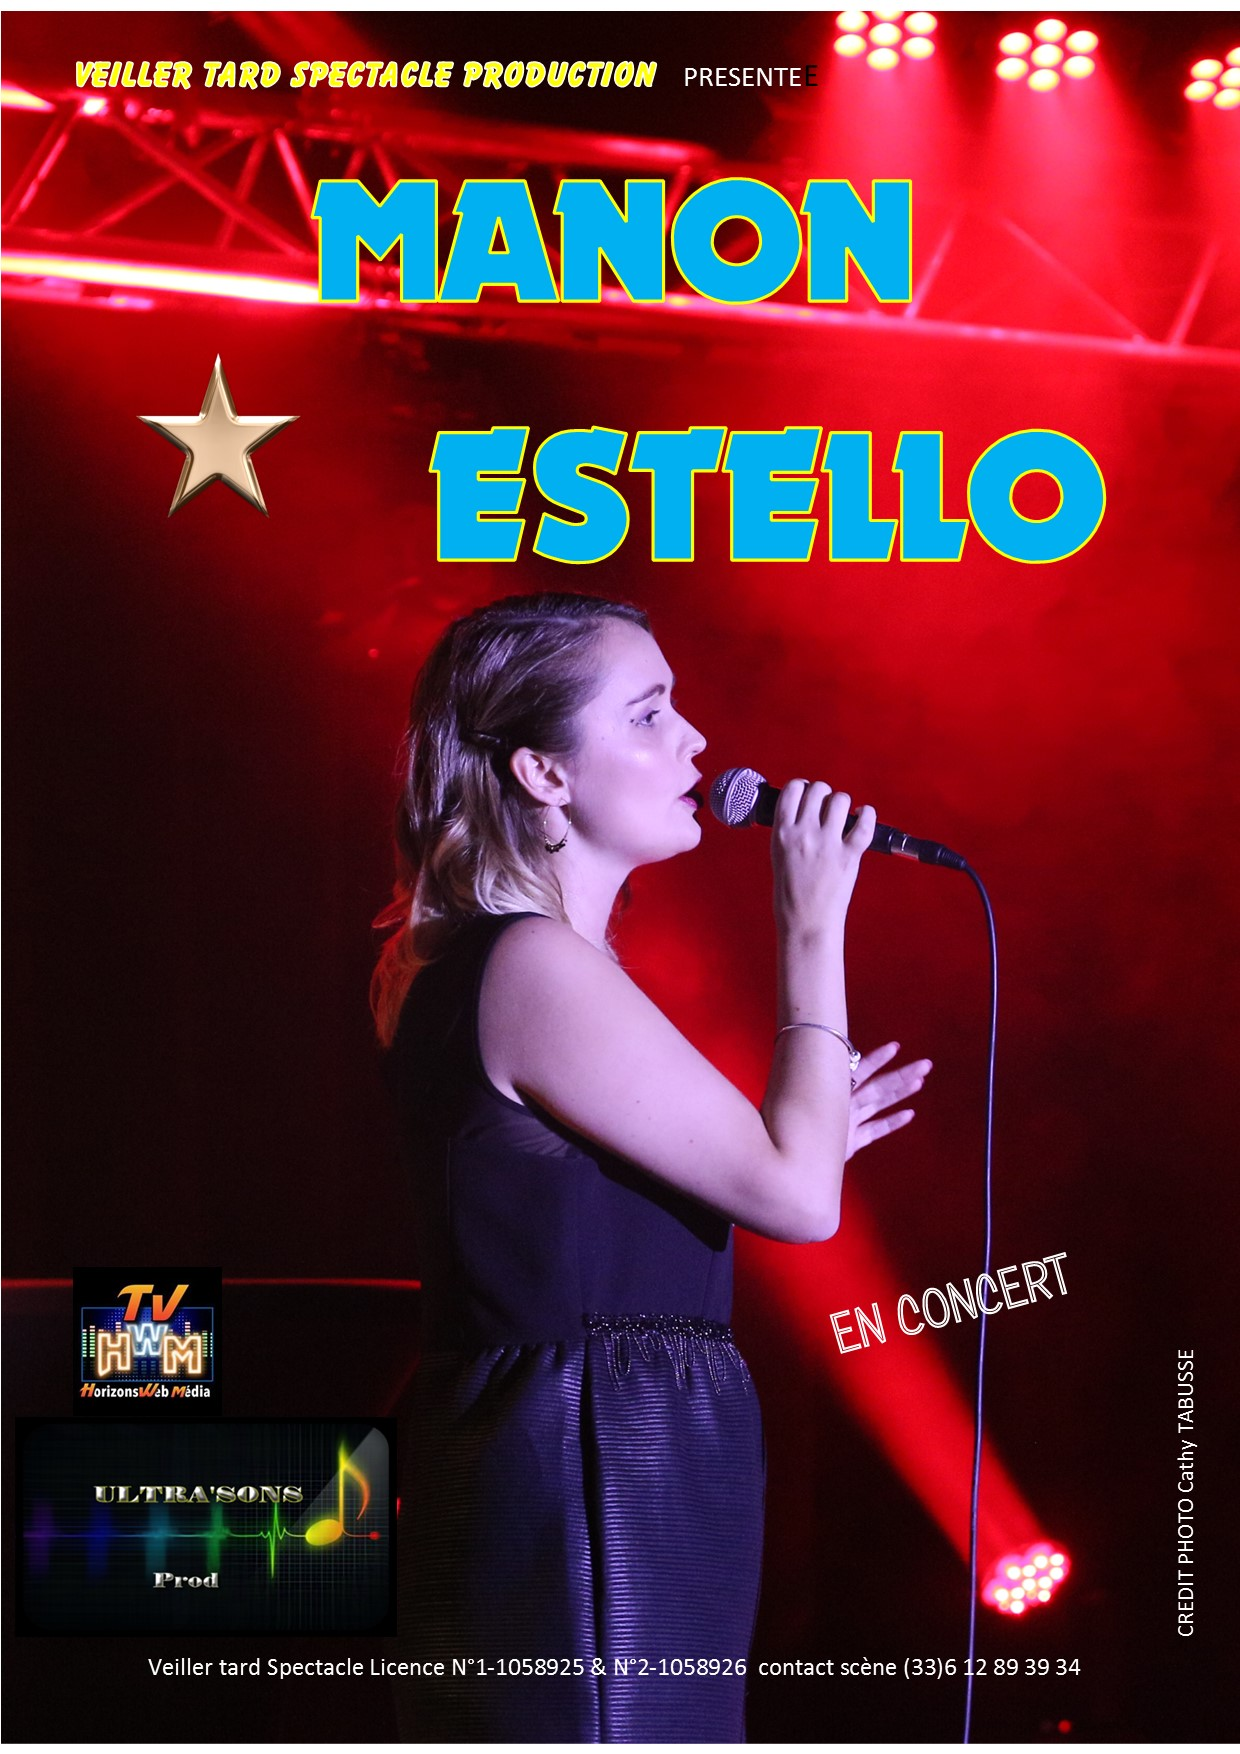 Manon Estello carte postale